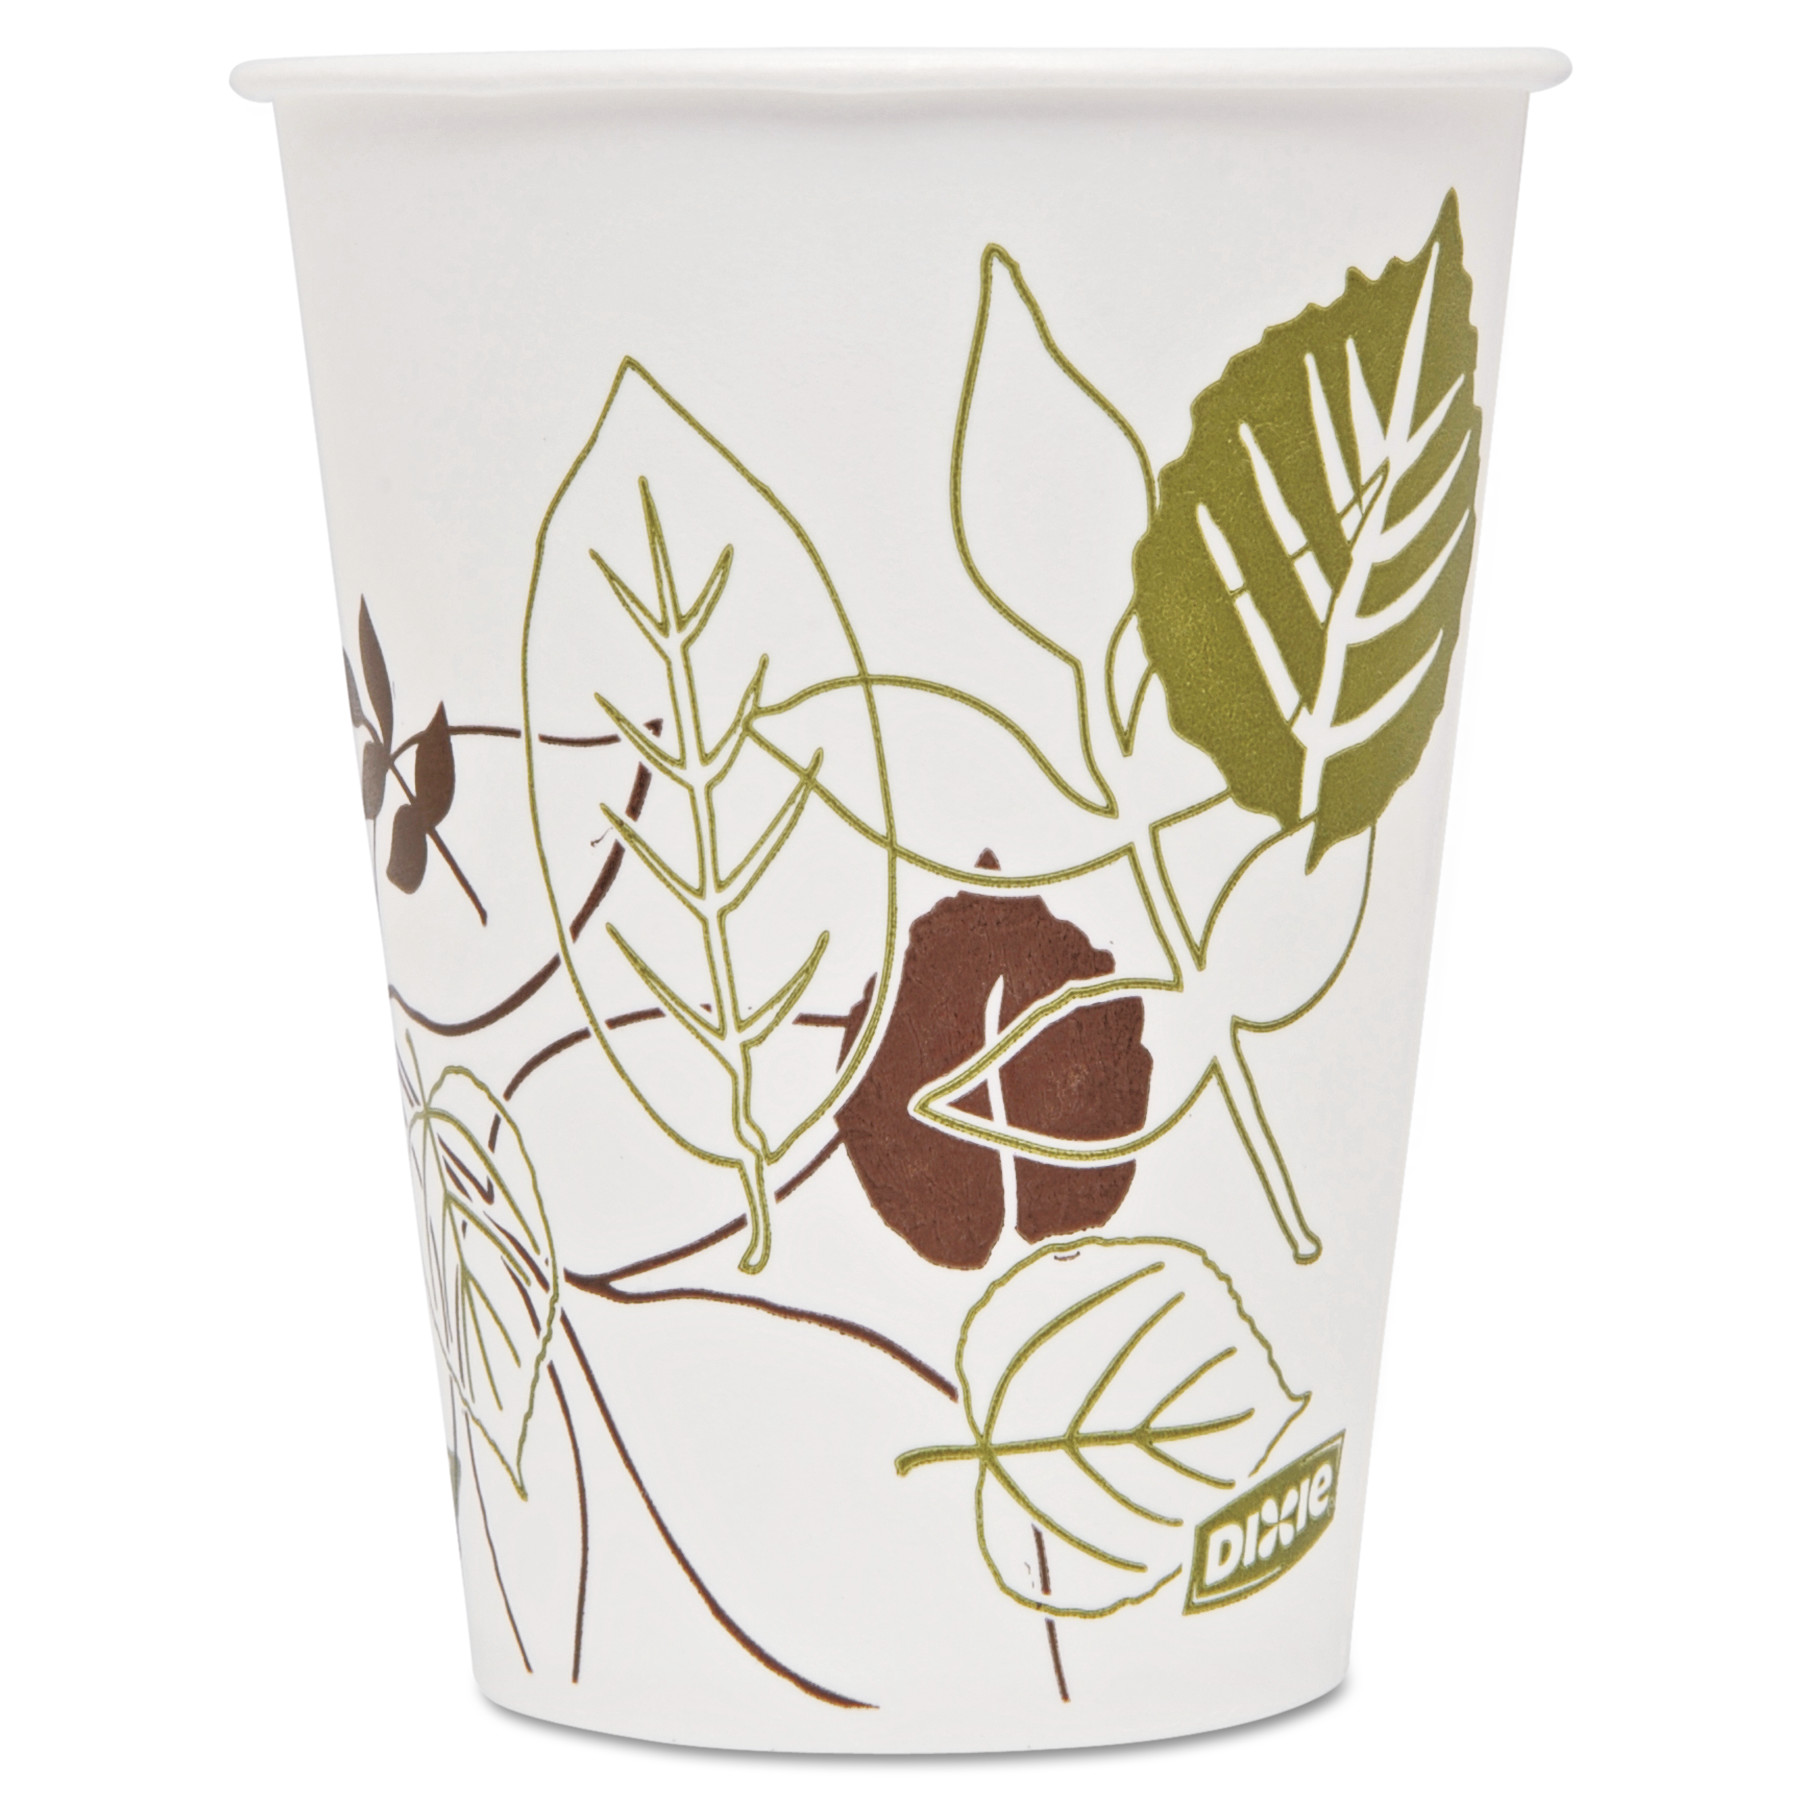 Dixie Pathways Polycoated Paper Cold Cups, 9oz, 2400/Carton -DXE9PPATH